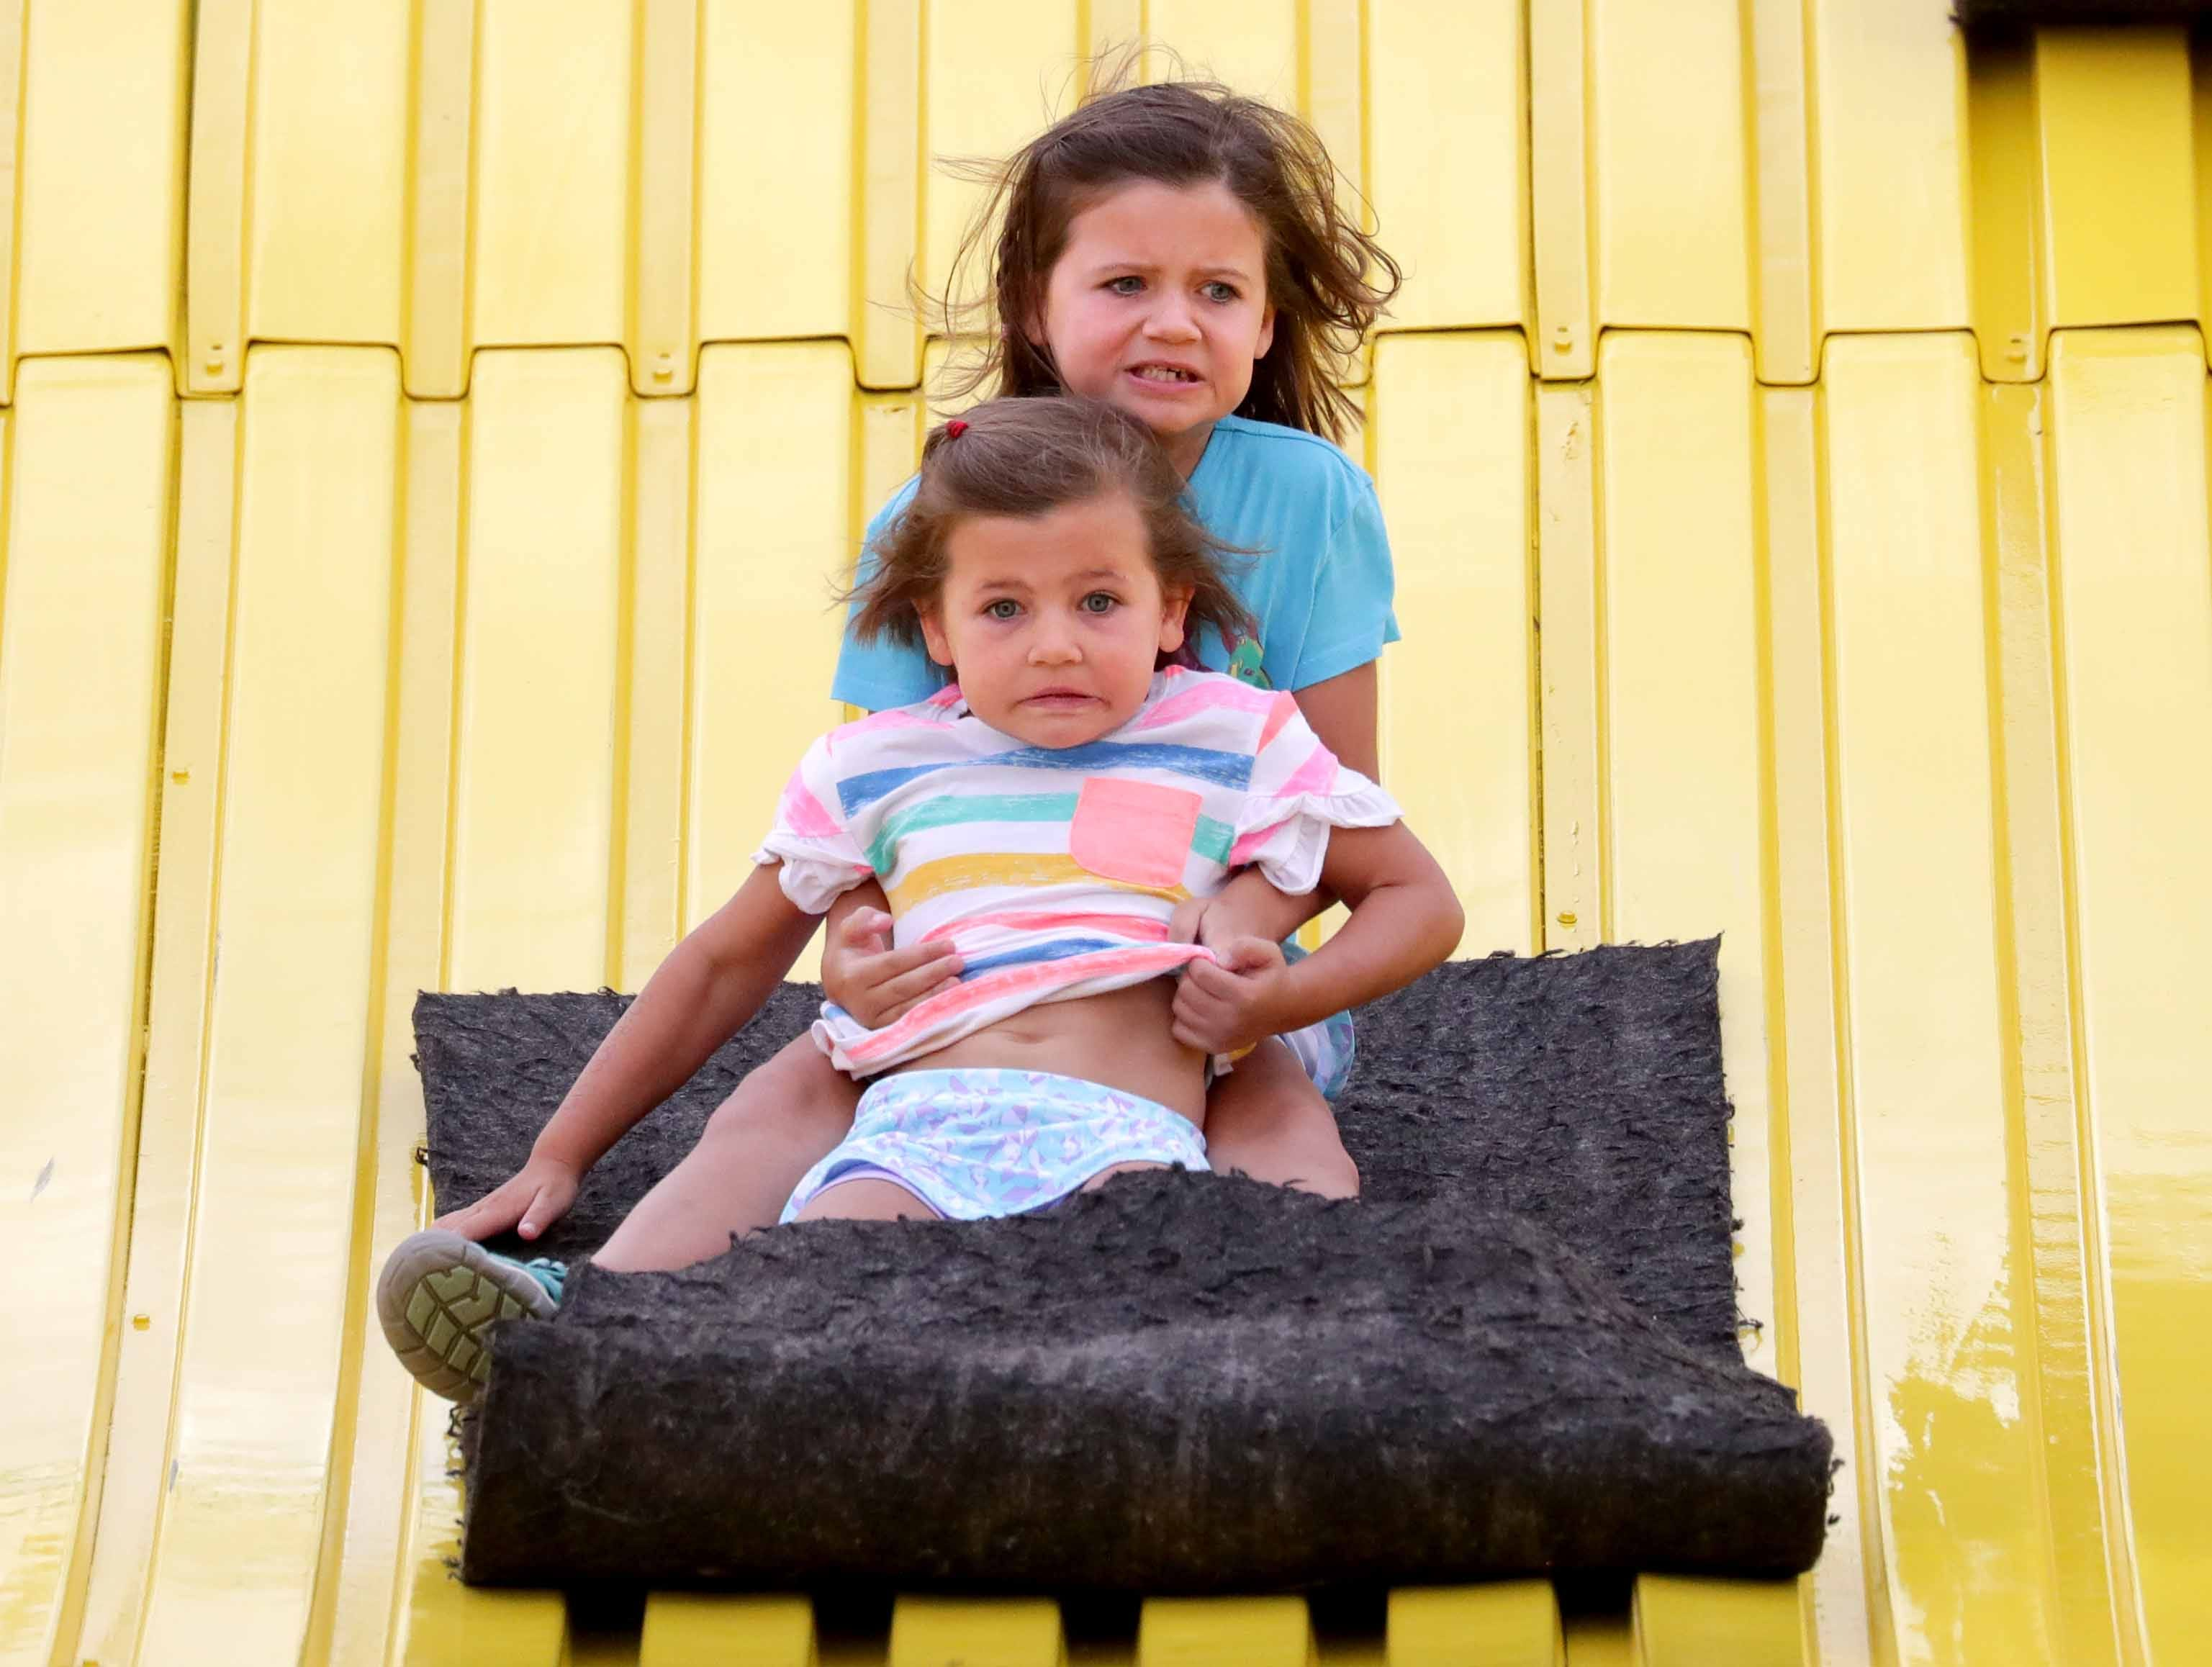 Five-year-old Eleanor Baltz (front) and her 7-year-old sister Evelyn, both from Nashville, Tenn., slide down the  Giant Slide at the Wisconsin State Fair. It's the 50th anniversary of the State Fair's Giant Slide. The girls were with their mother, Sarah Baltz.